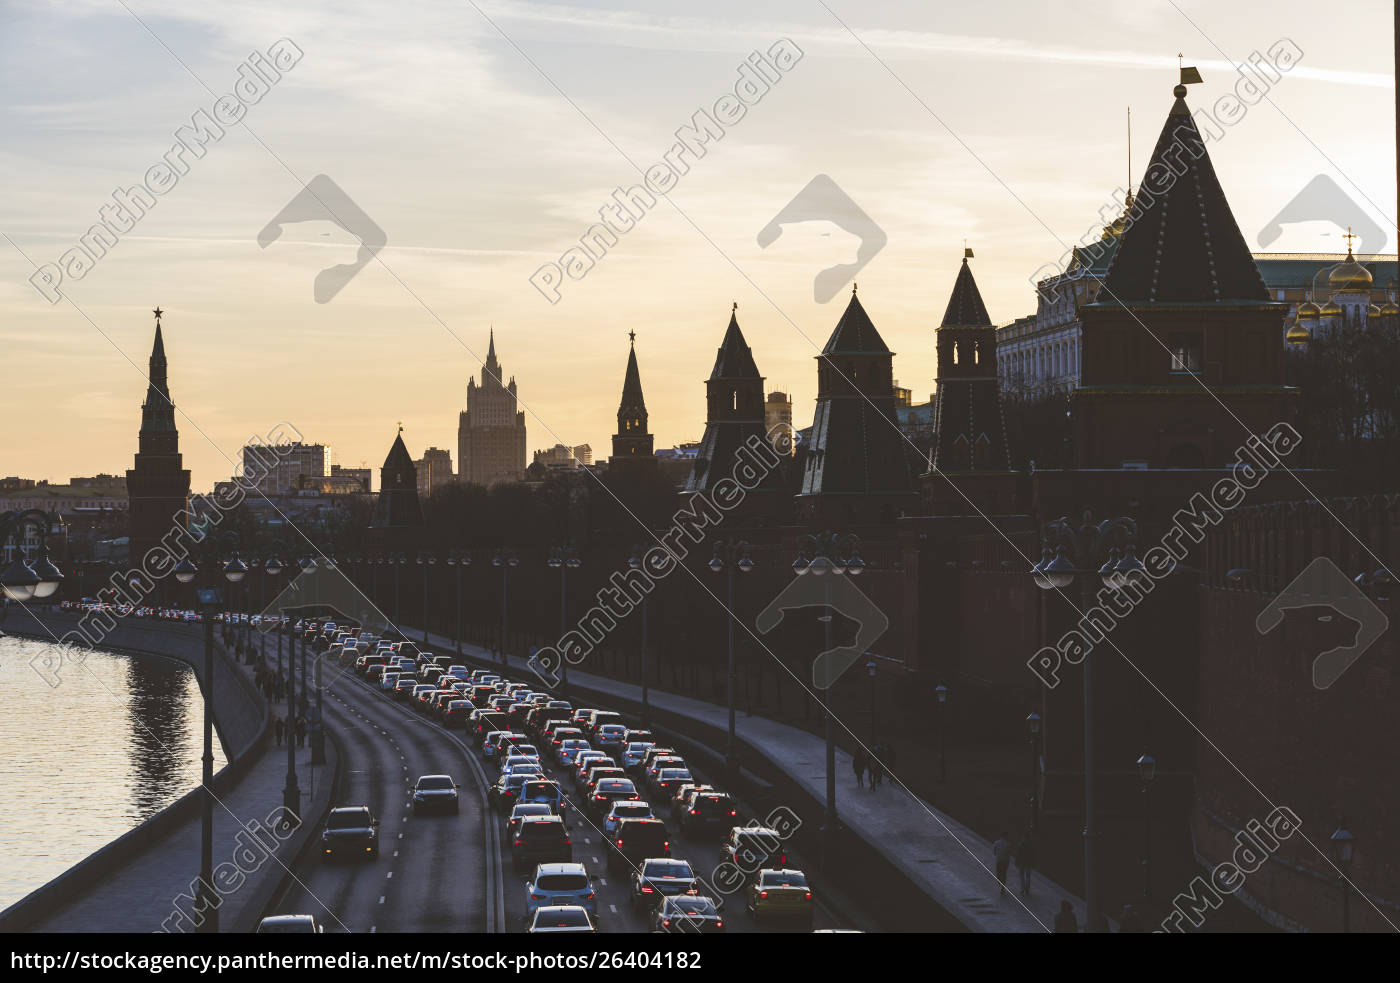 russia, , moscow, , the, kremlin, embankment, with - 26404182